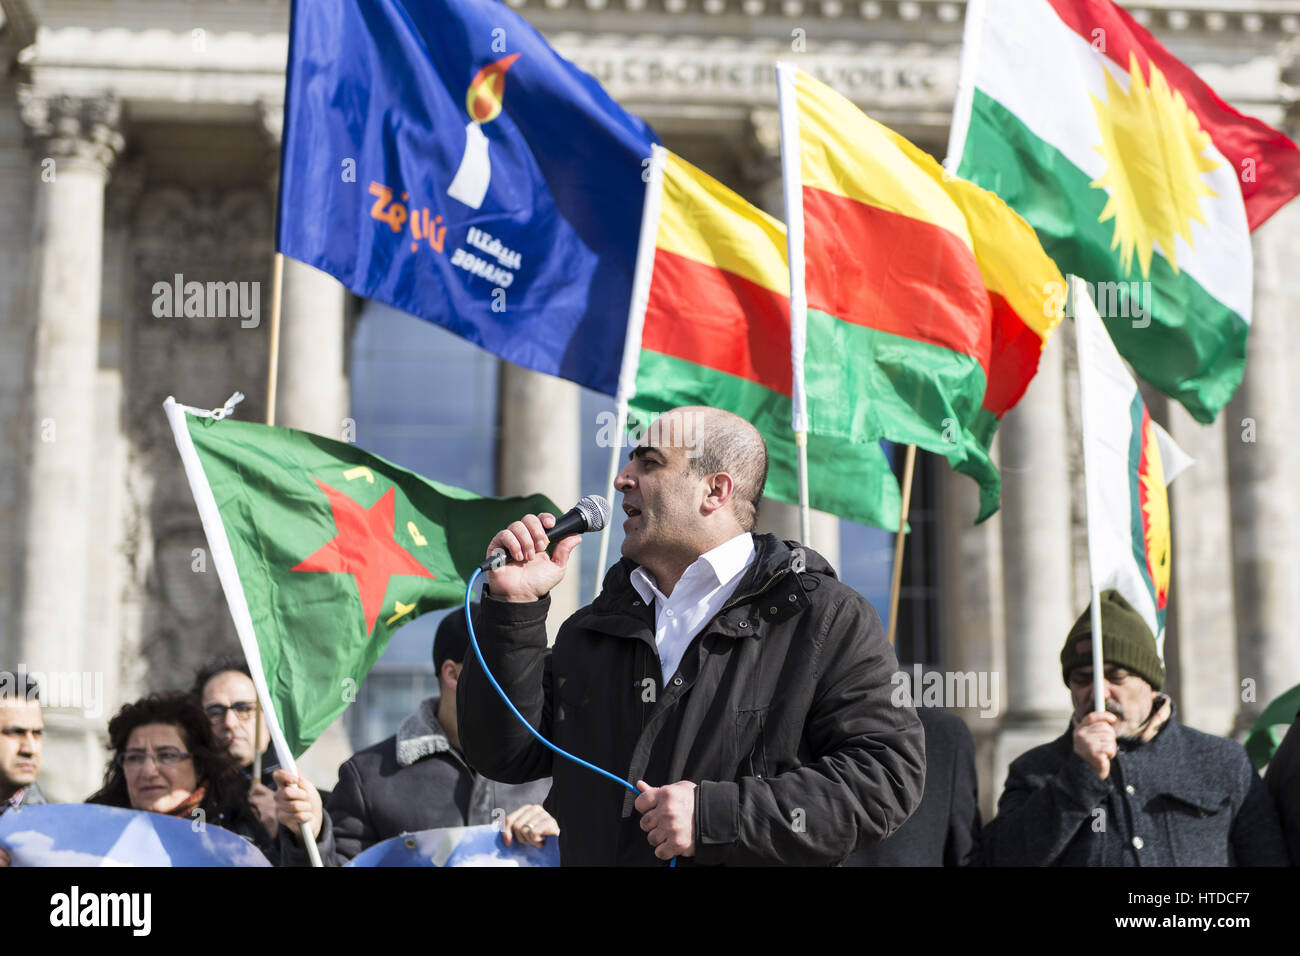 Berlin, Germany. 10th Mar, 2017. Yezidi representatives and Kurds demanding political support in front of the German - Stock Image